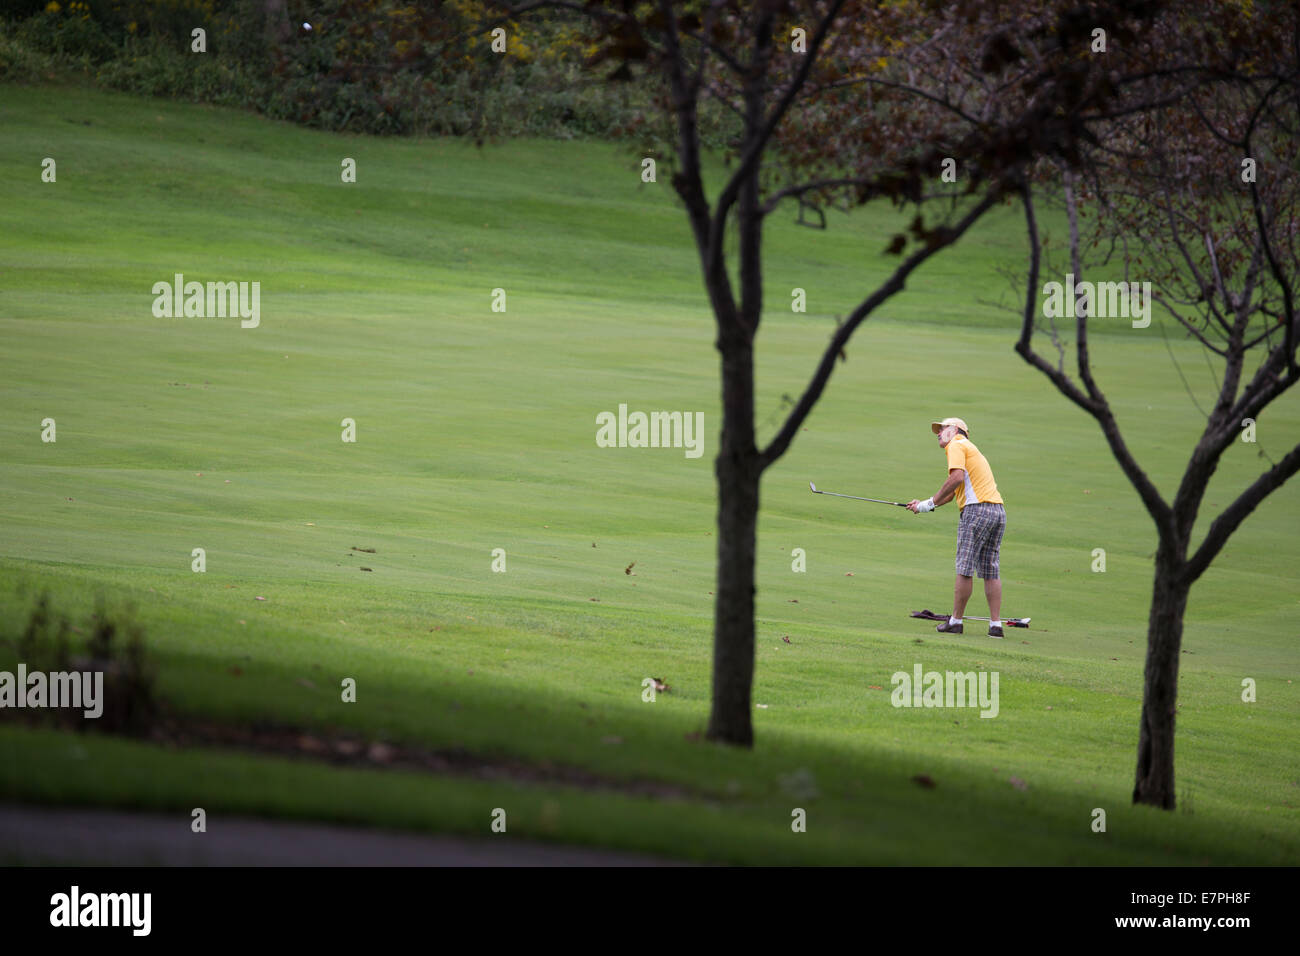 man golfing golf course - Stock Image